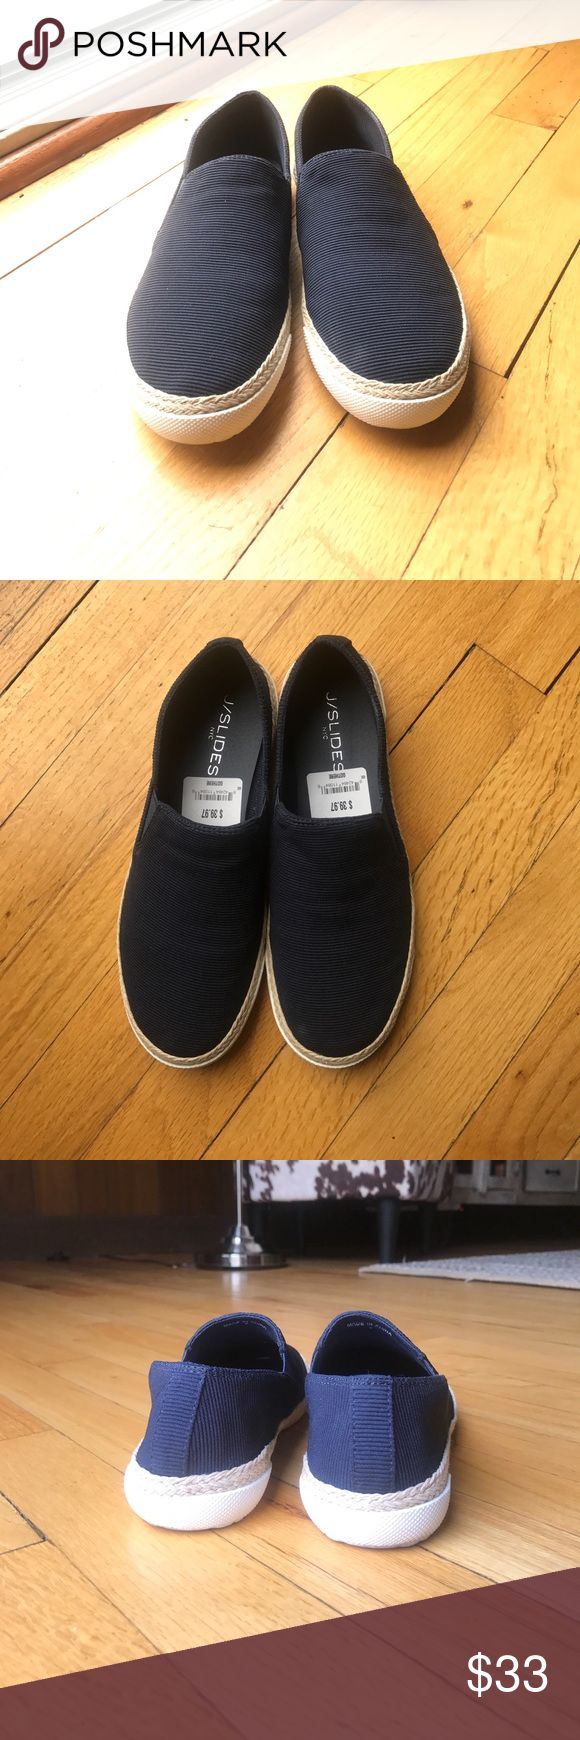 J/Slides Navy Slip Ons. Brand new, worn once! J/Slides navy slip on shoes, super comfortable and great for walking! These have only been worn once for a couple of hours so the only thing wrong with them is some dirt on the bottom. I bought them from Nordstrom Rack. They just didn't quite fit me right and since I wore them out, the store wouldn't take them back. I bought these yesterday, so please no low-ball offers! Thank you! J/SLIDES Shoes Flats & Loafers